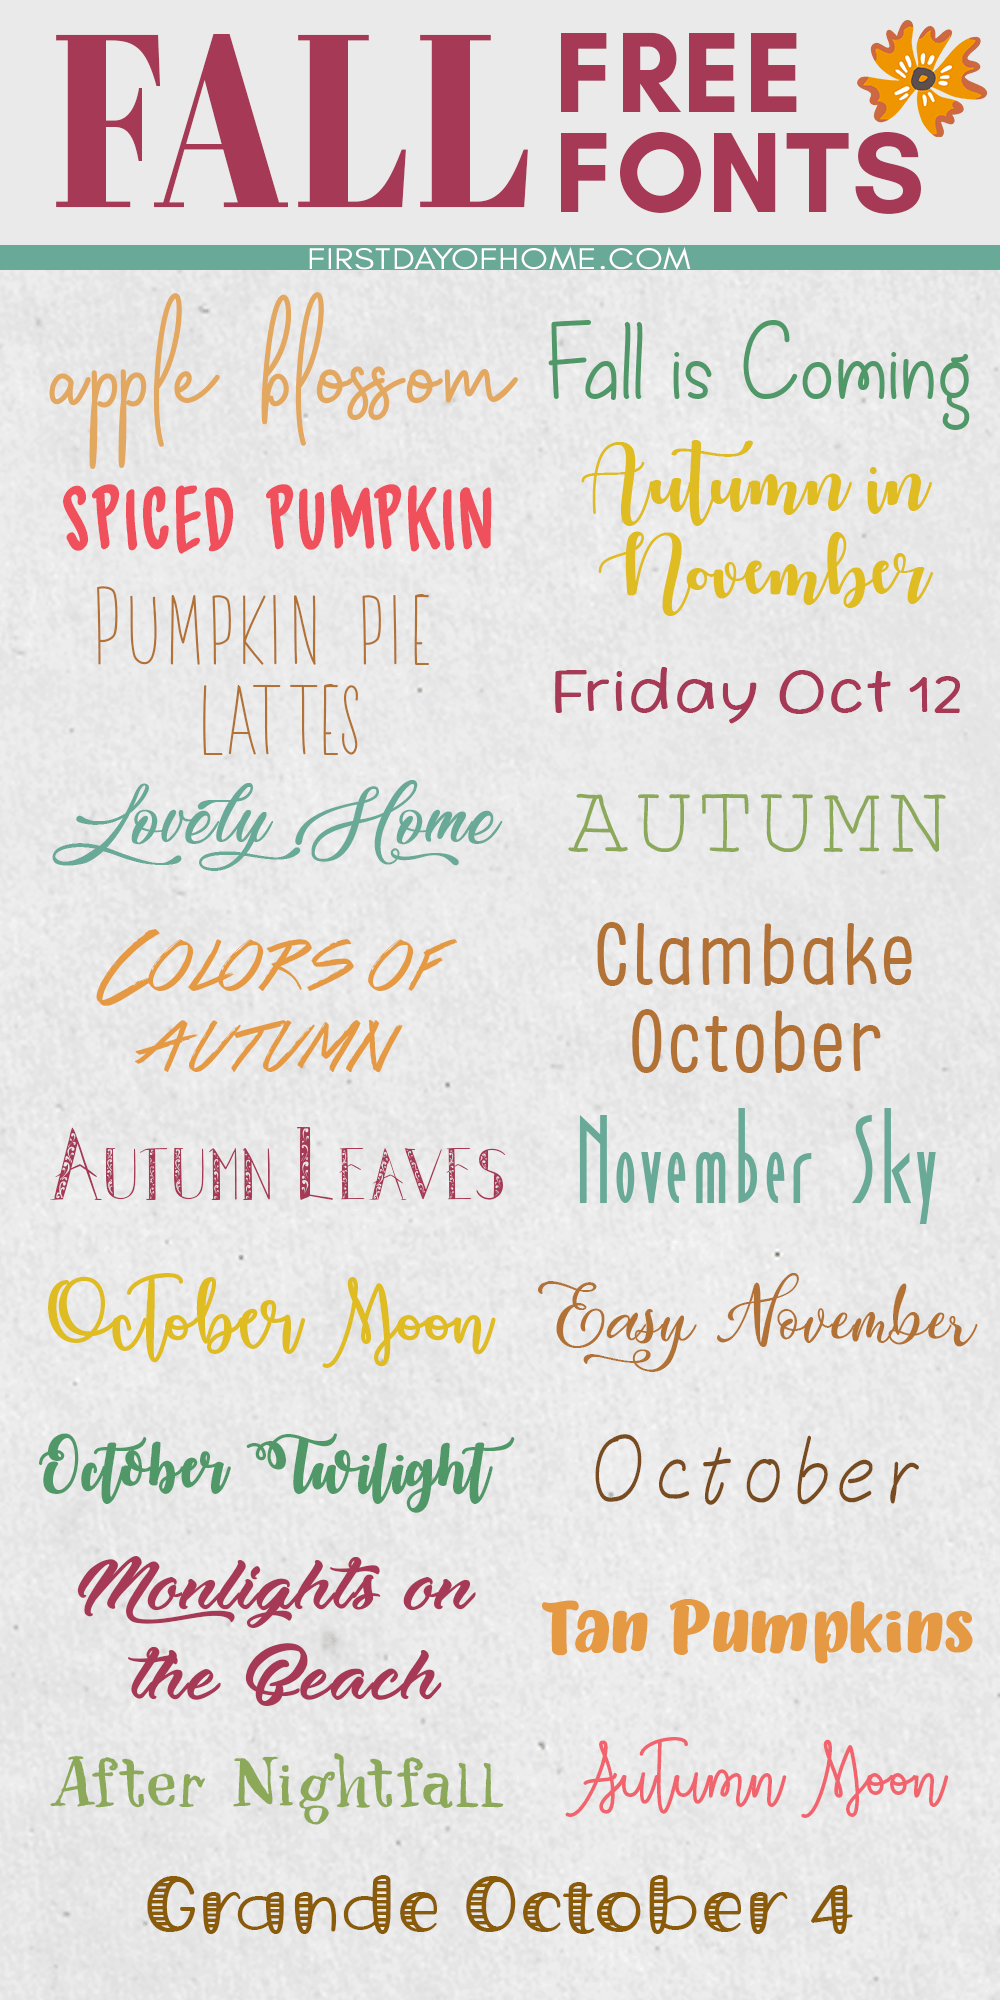 Fall fonts you can download for free for various fall crafts including Cricut Maker and Silhouette Cameo projects